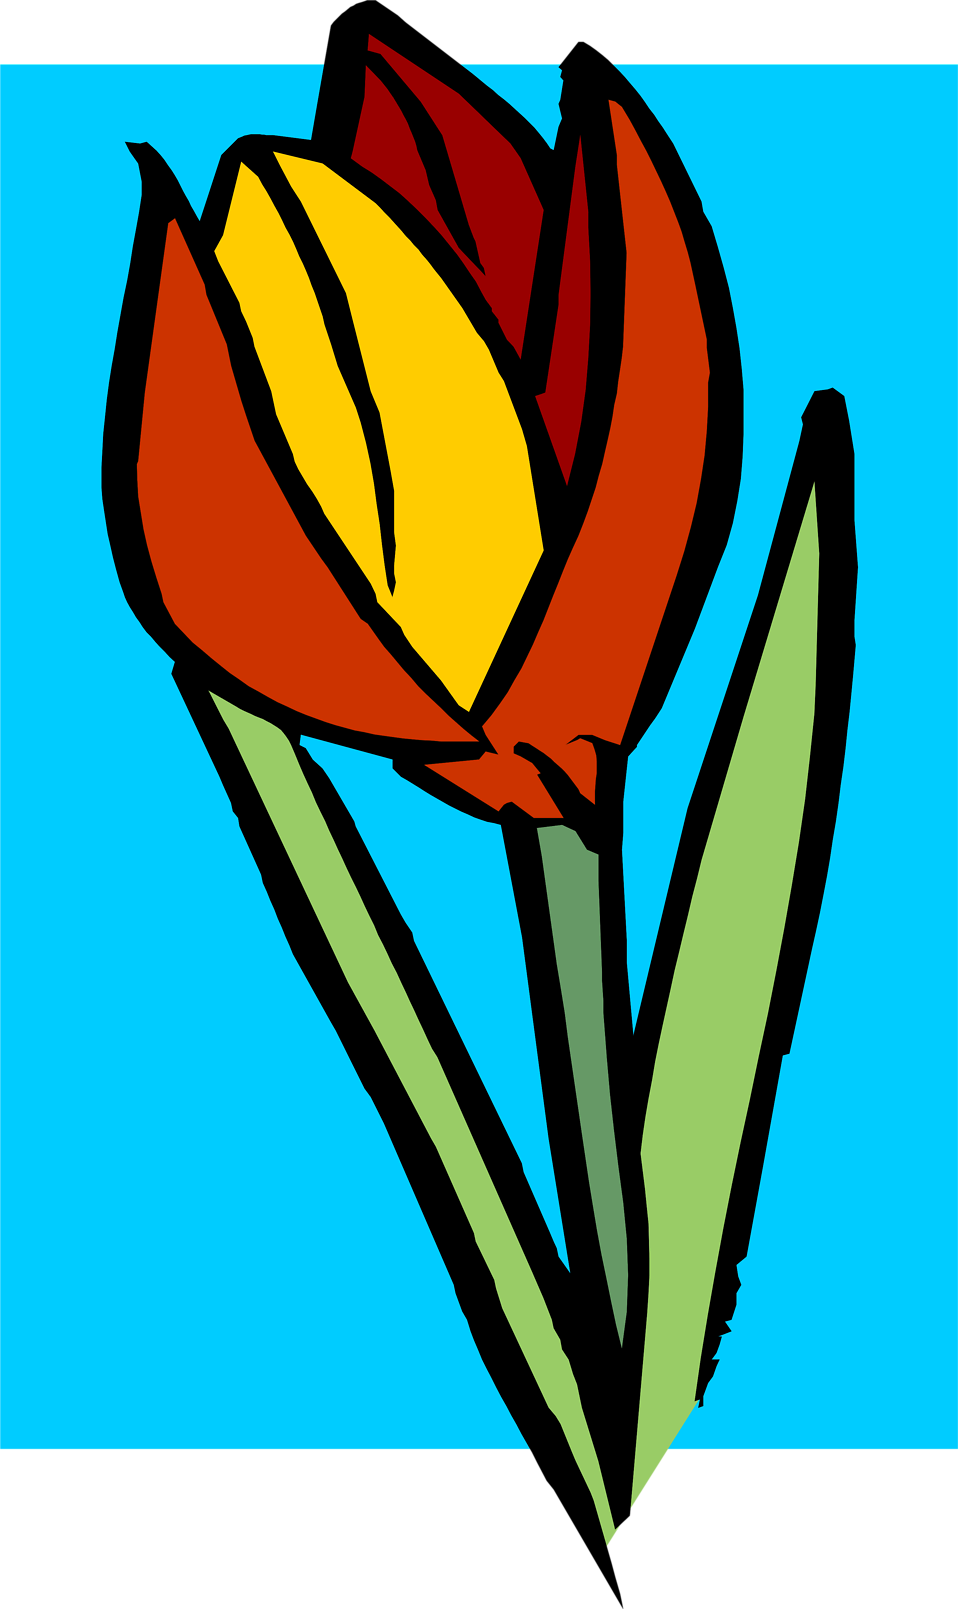 Illustration of a red and yellow flower : Free Stock Photo